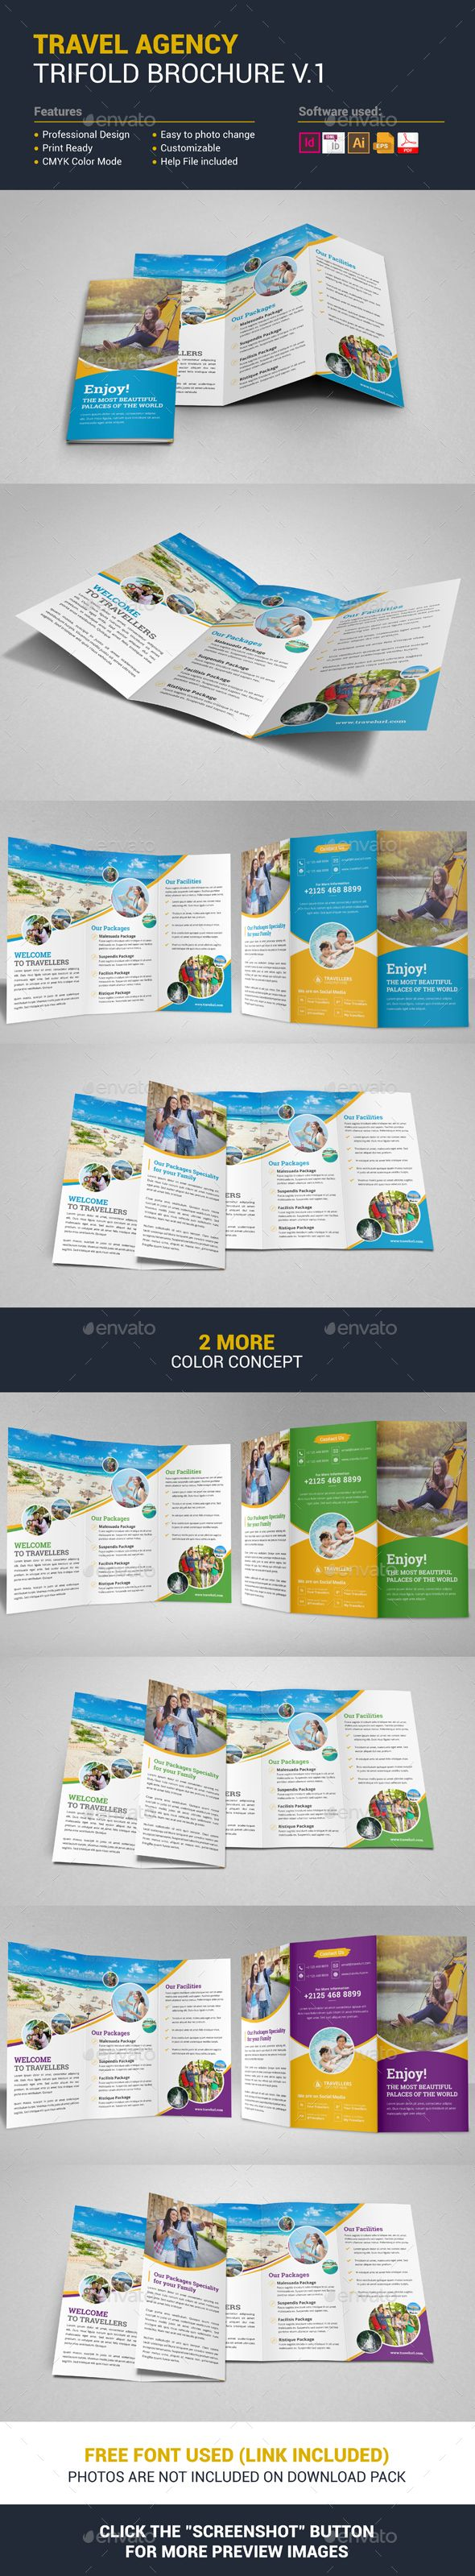 Cool 1 Page Resumes Thin 1 Week Calendar Template Regular 1099 Agreement Template 11 Vuze Search Templates Old 15 Year Old Resume Example Soft2 Week Notice Templates 25  Best Ideas About Travel Brochure Template On Pinterest ..